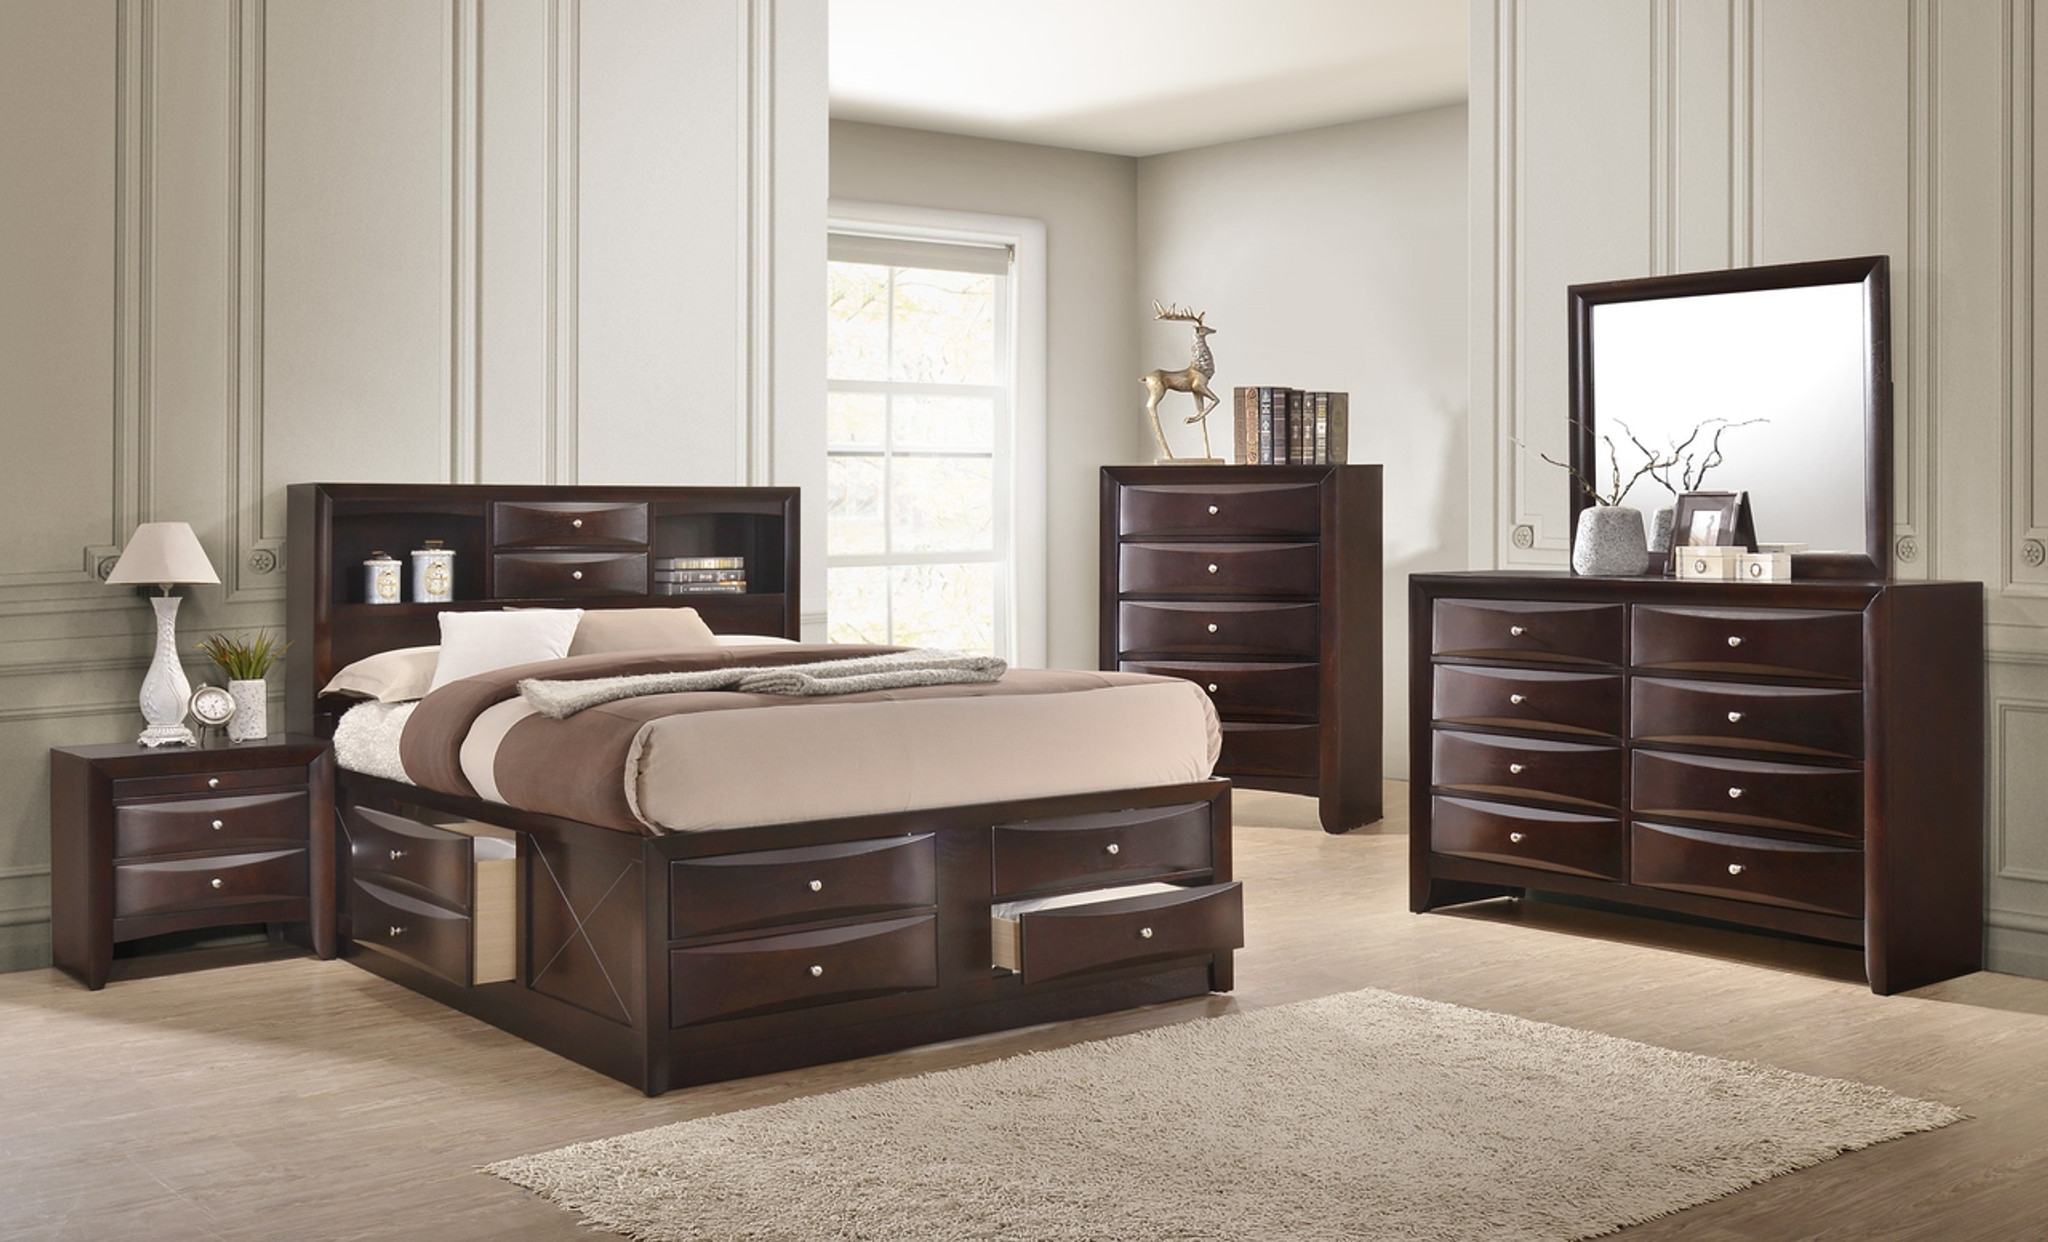 B4265 EMILY BEDROOM SET DARK CHERRY COLLECTION by Crown Mark